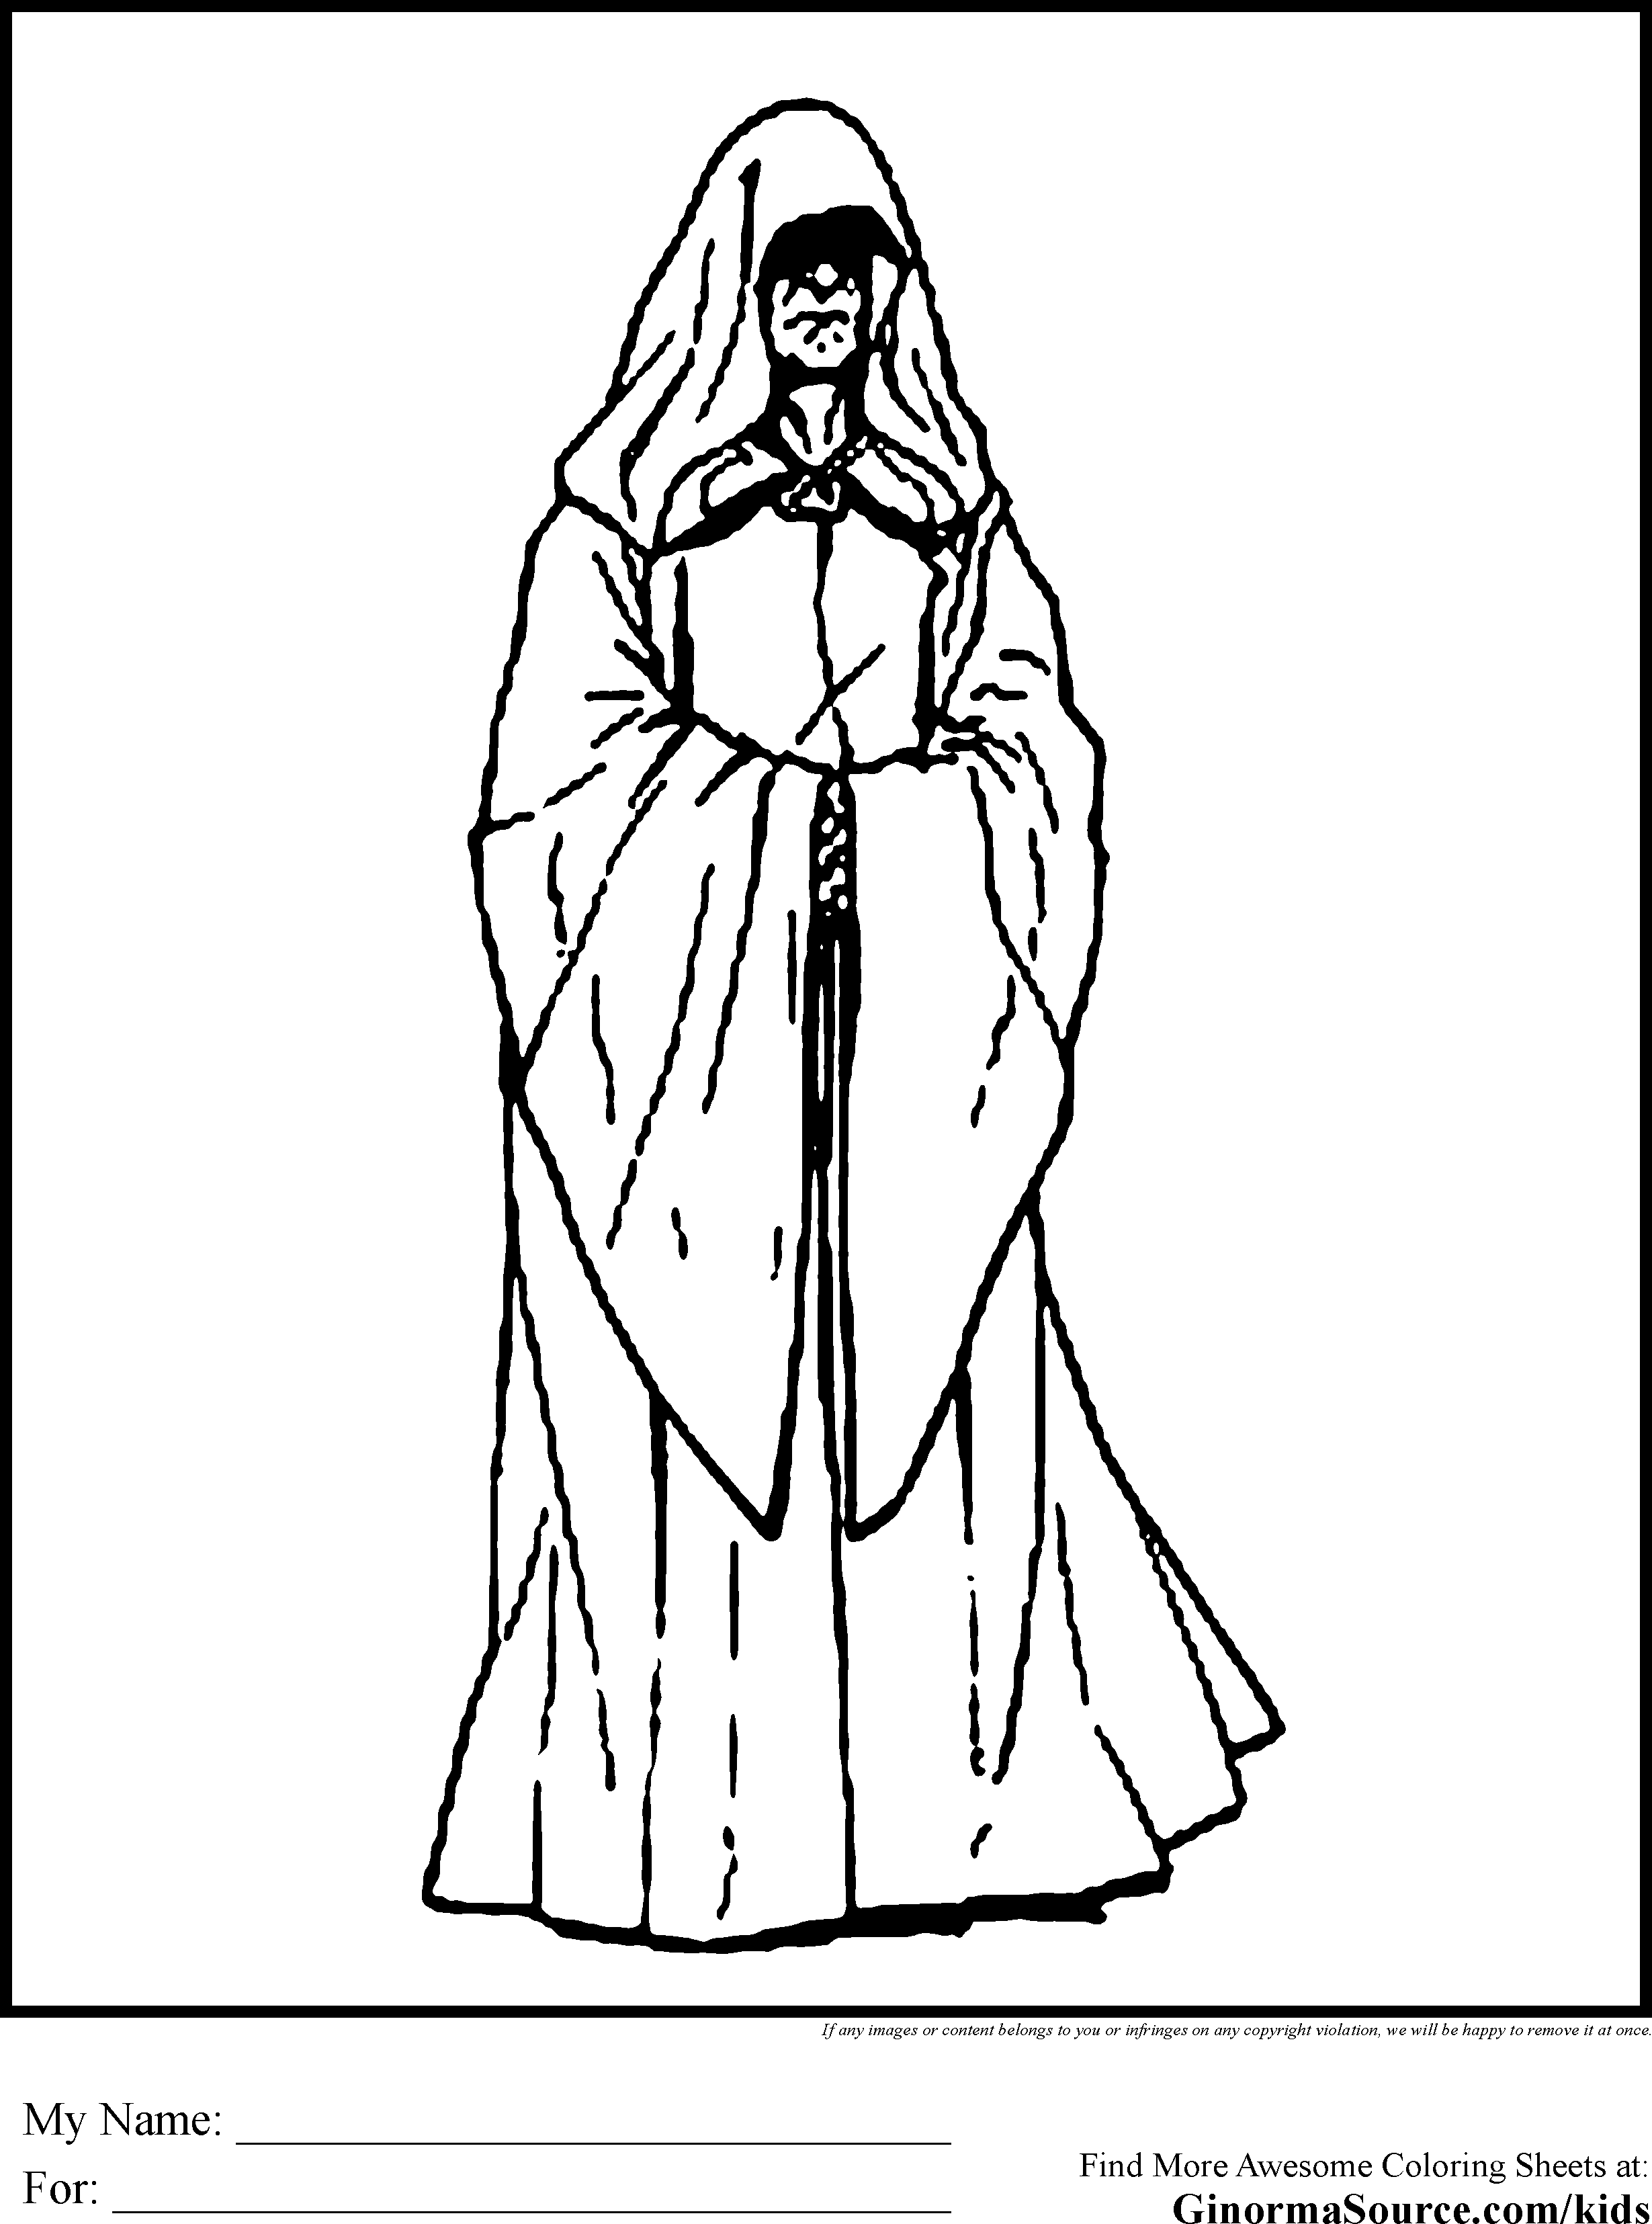 Darth Sidious coloring pages - Google Search | Coloring | Pinterest